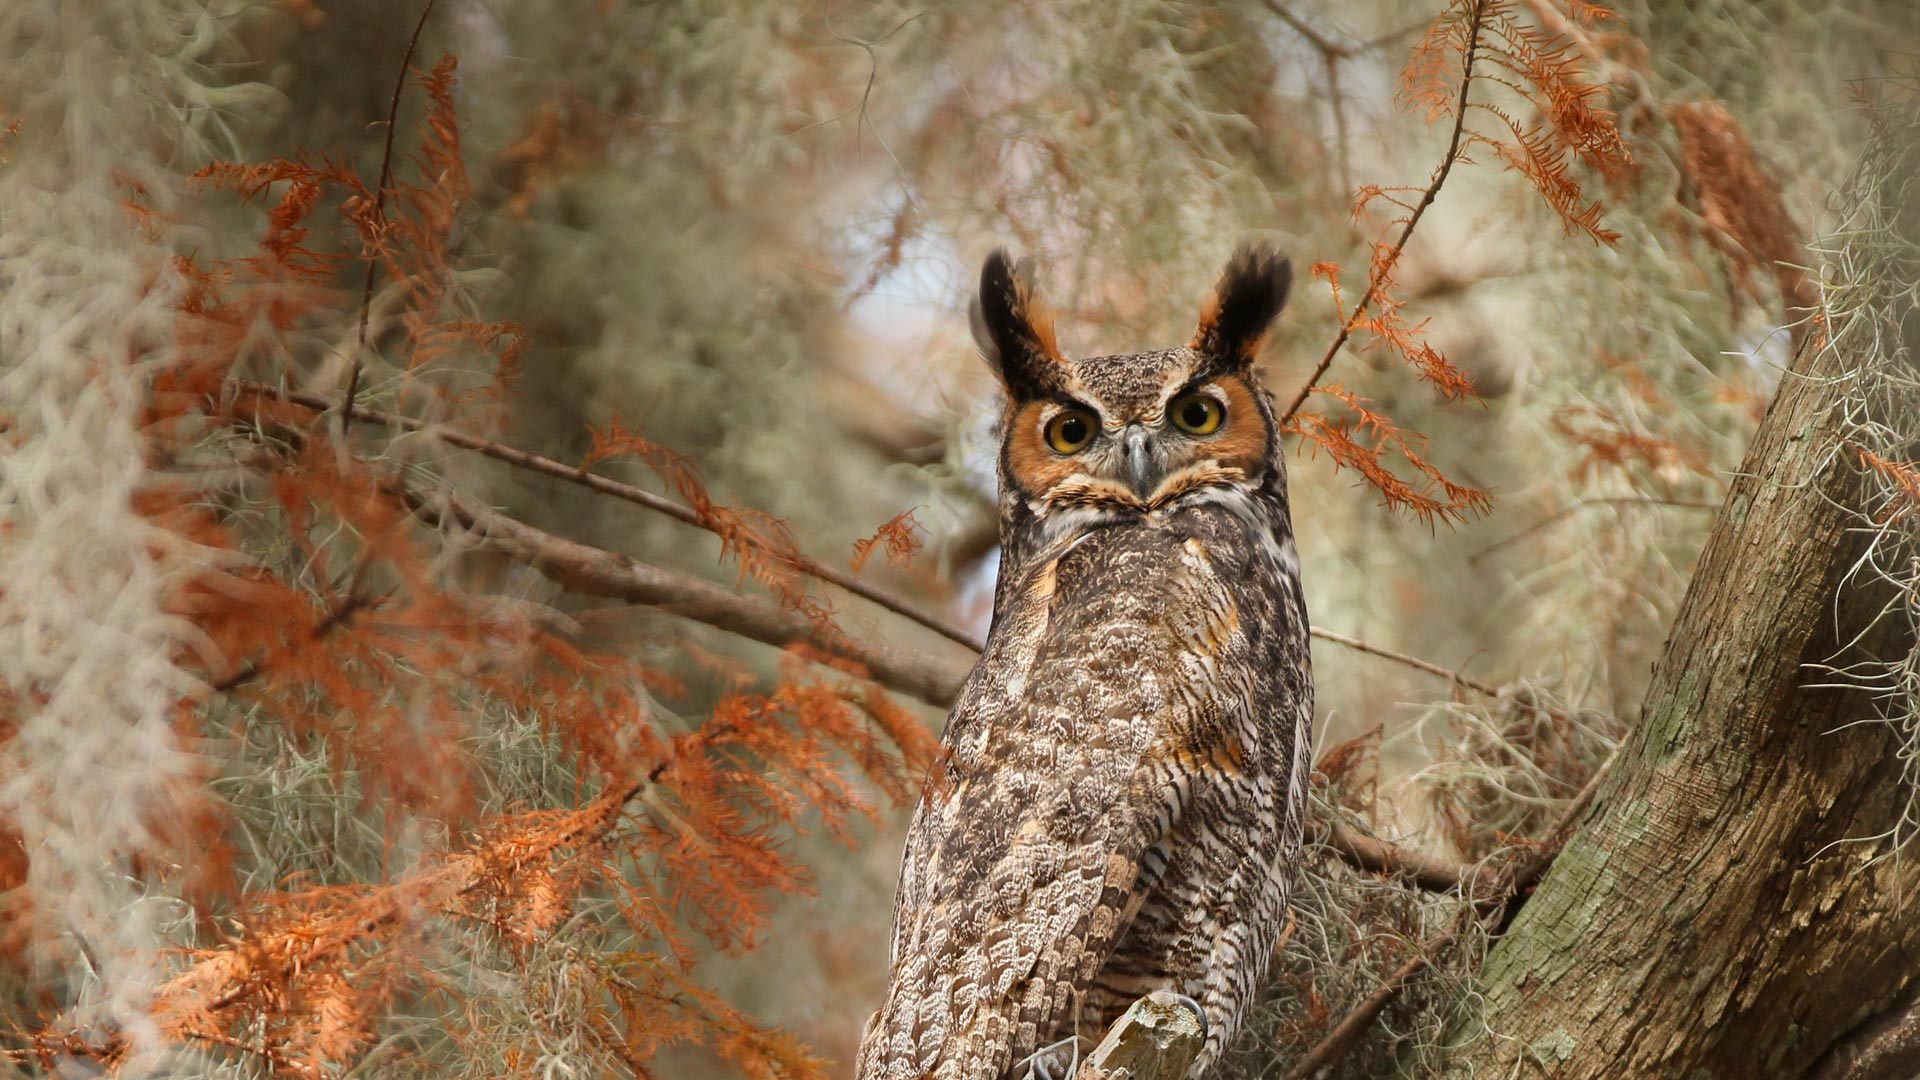 Great horned owl near Lake Tohopekaliga, south of St. Cloud, Florida (© Matthew Studebaker/Minden Pictures)